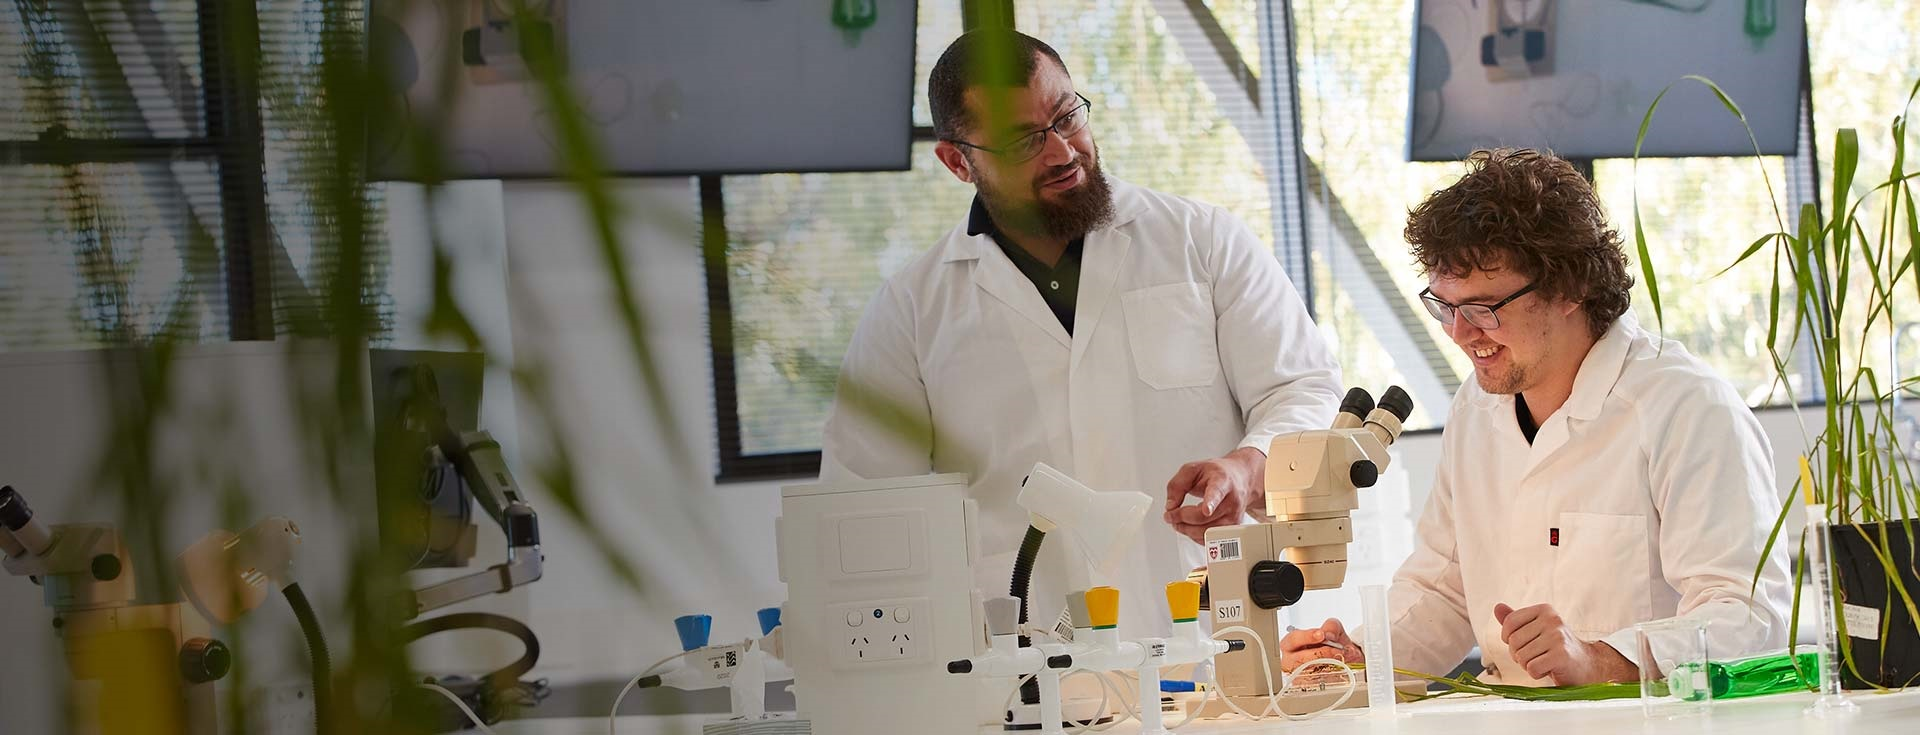 Murdoch student and lecturer in a science lab